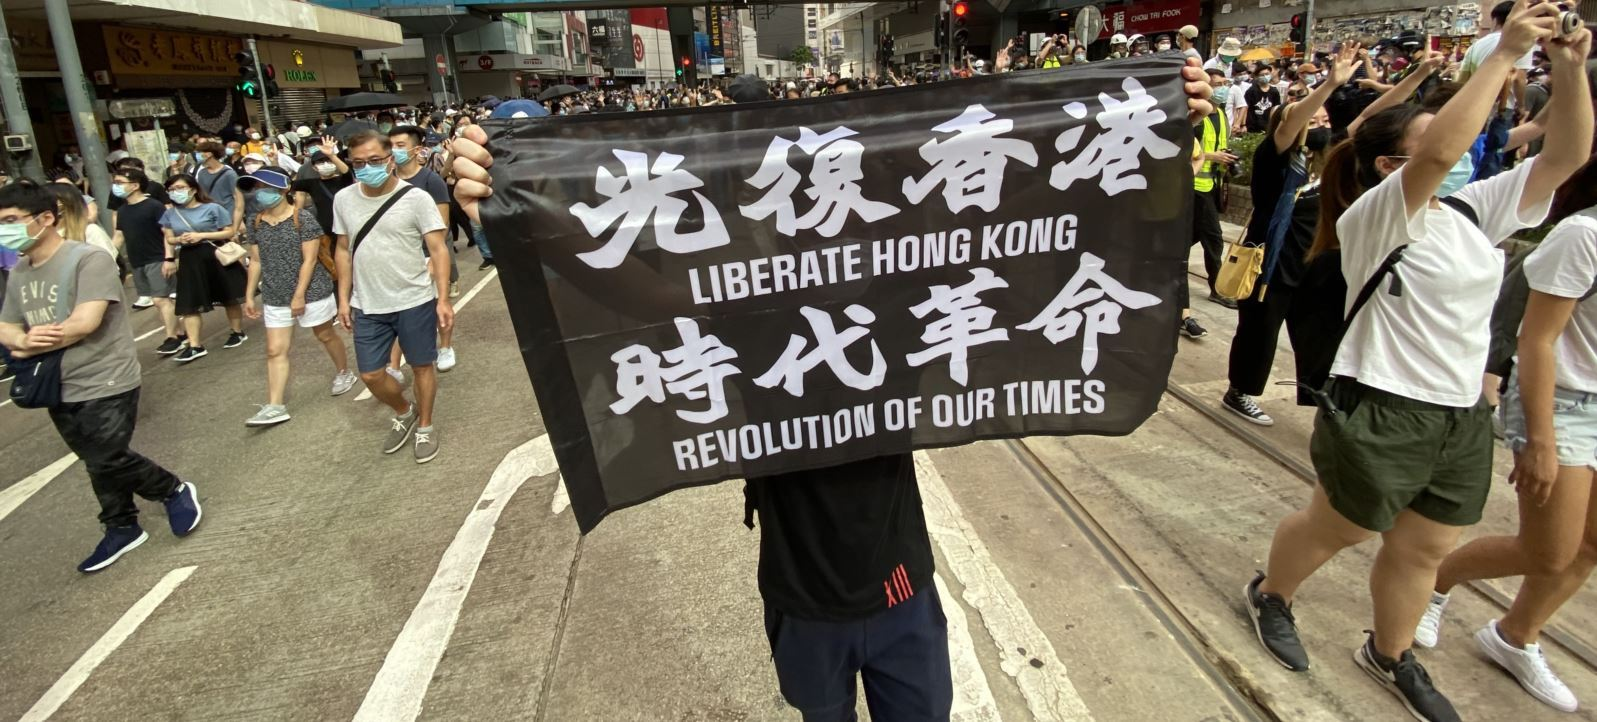 France refuses to ratify Hong Kong extradition treaty in response to Chinese national security law